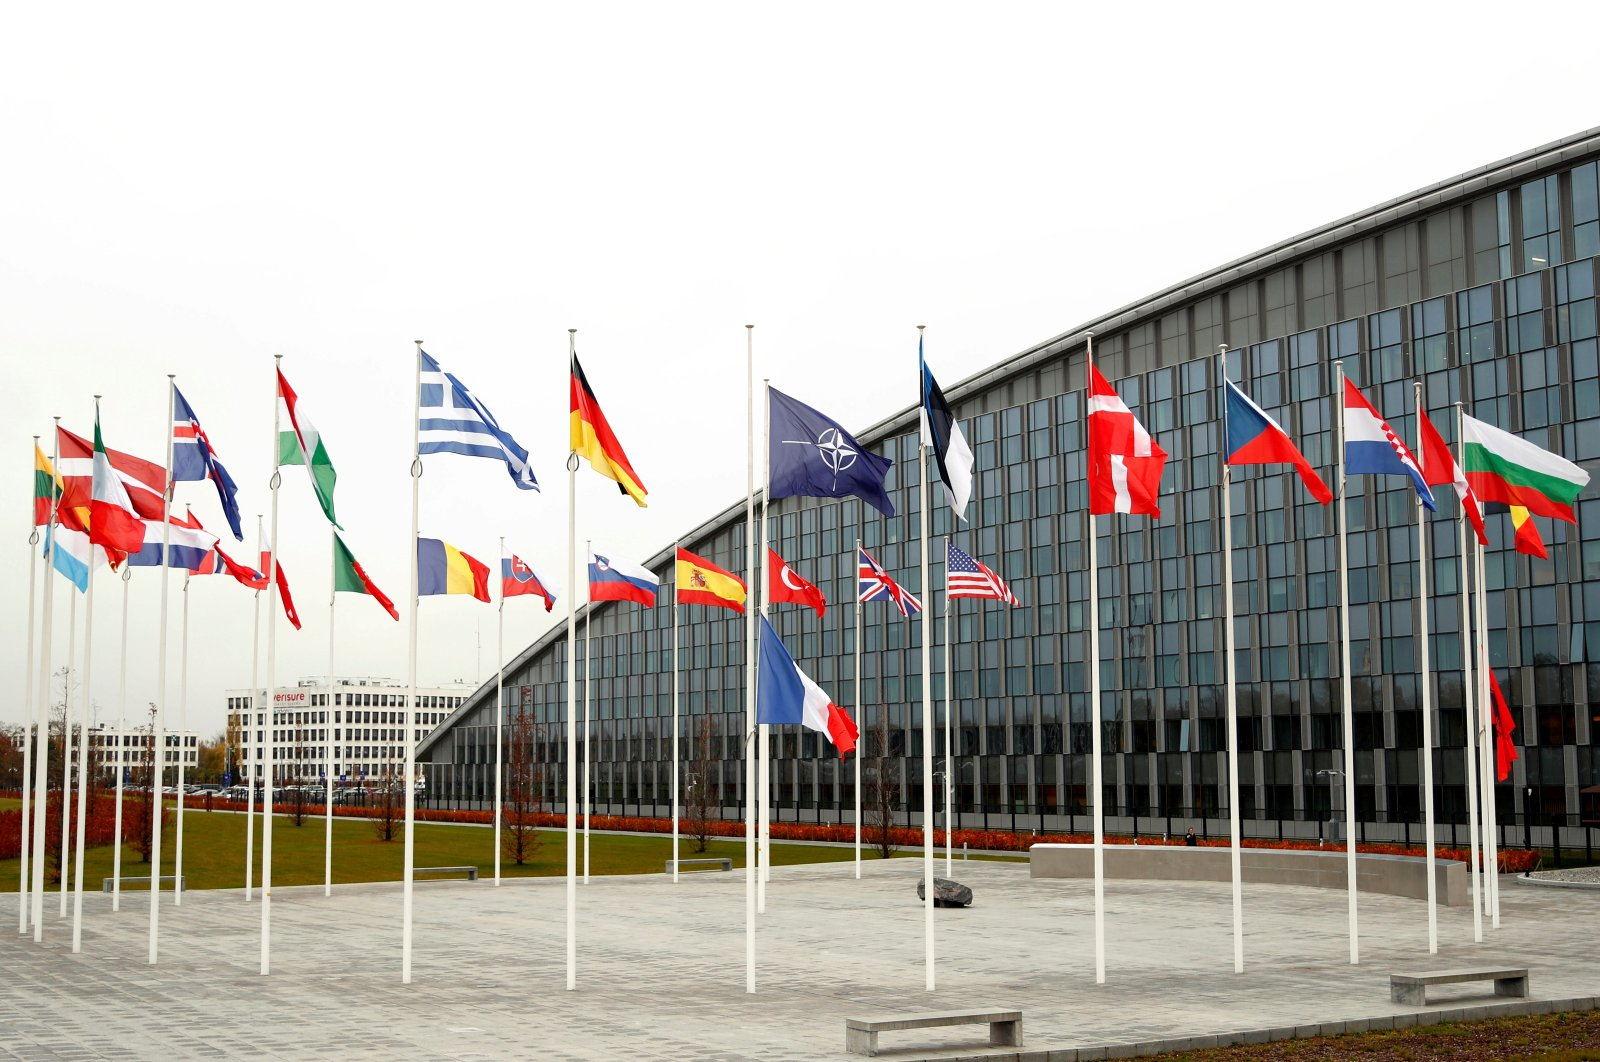 Flags of NATO member countries at its headquarters in Brussels, Belgium, Nov. 26, 2019.  (REUTERS Photo)